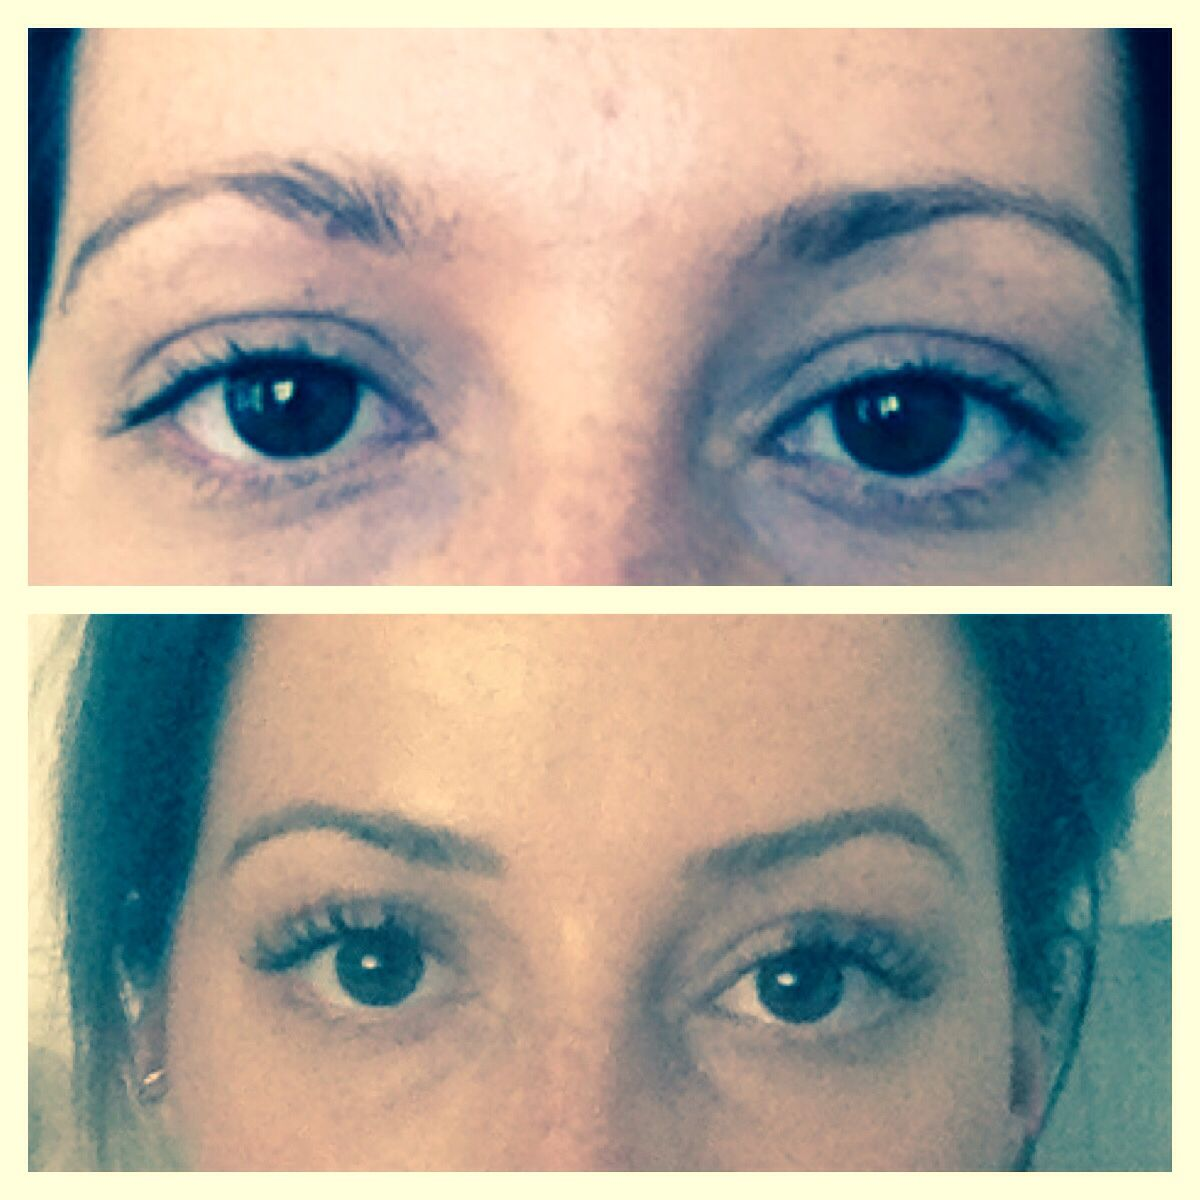 Before and after eyebrow tattoo also with eyelash